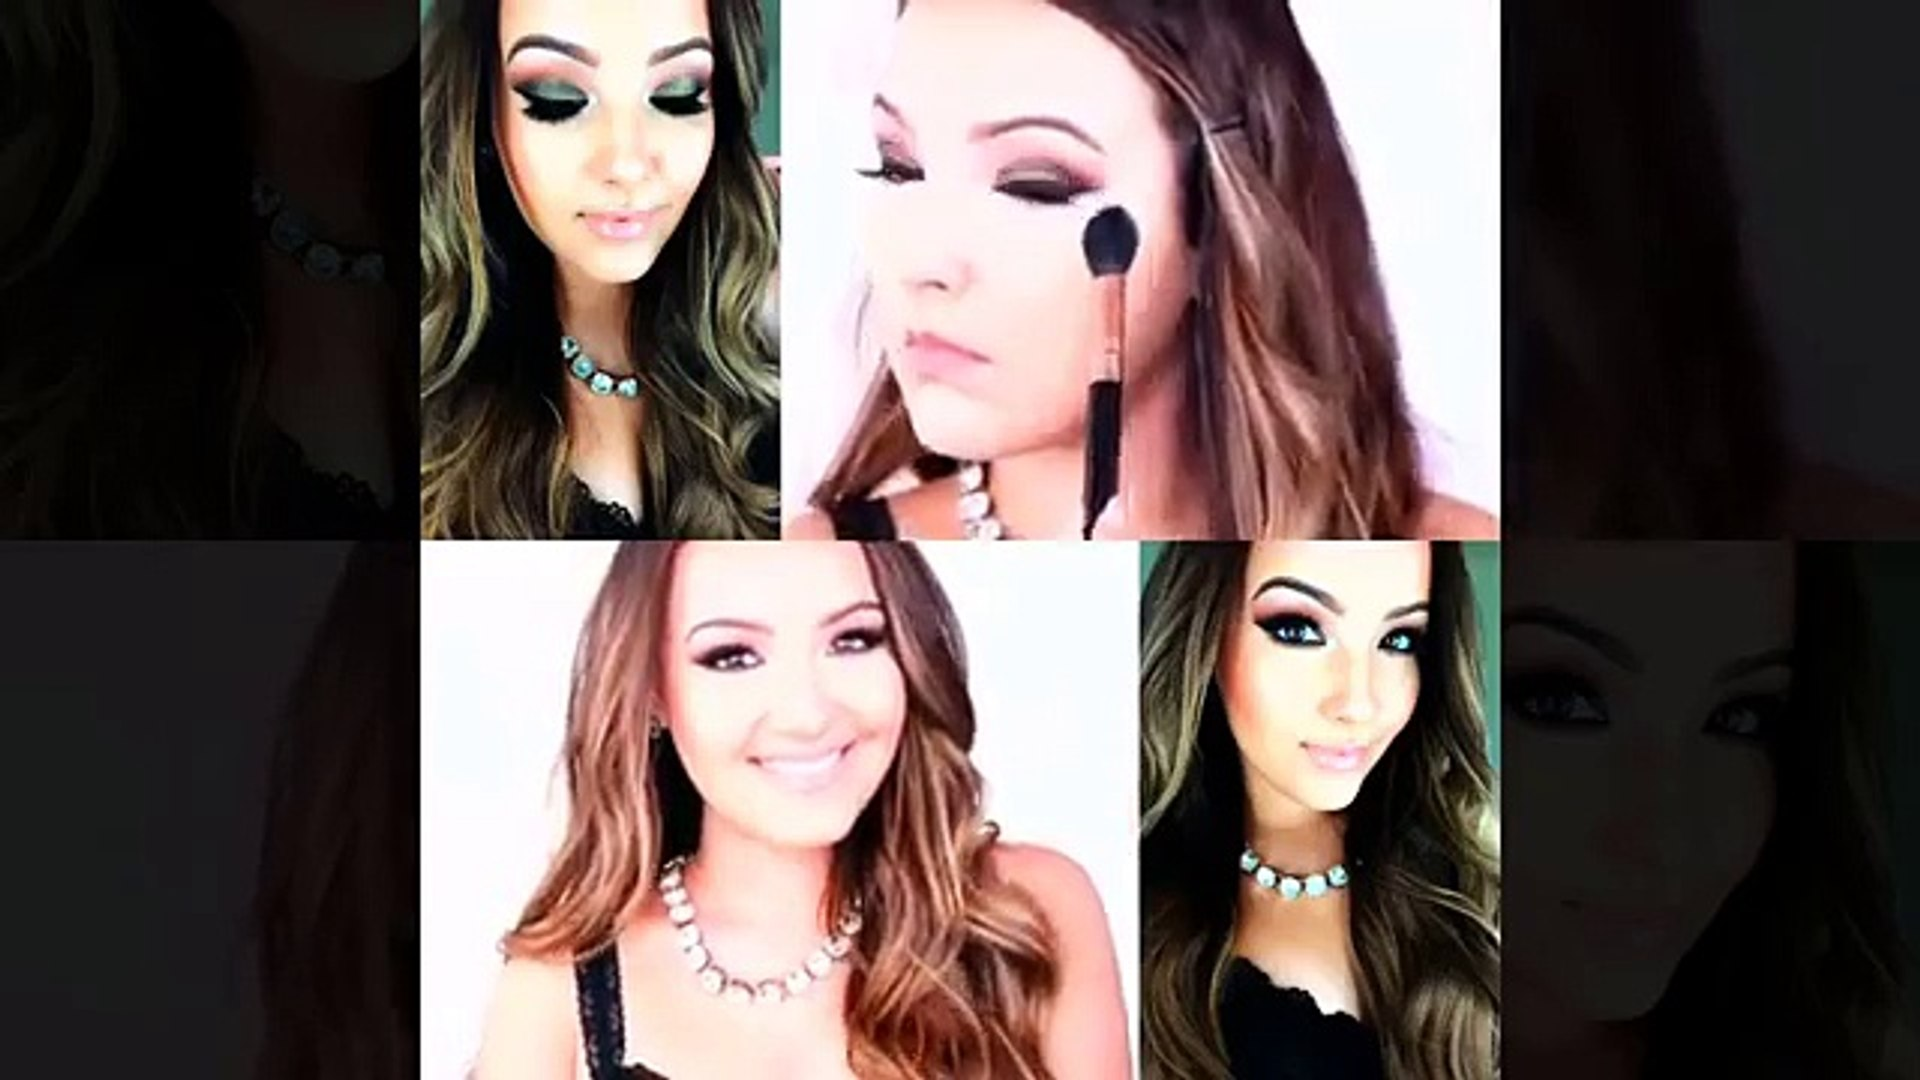 Makeup Tutorial Compilation - Easy And Beautiful Makeup Tutorial Compilation Videos 2017